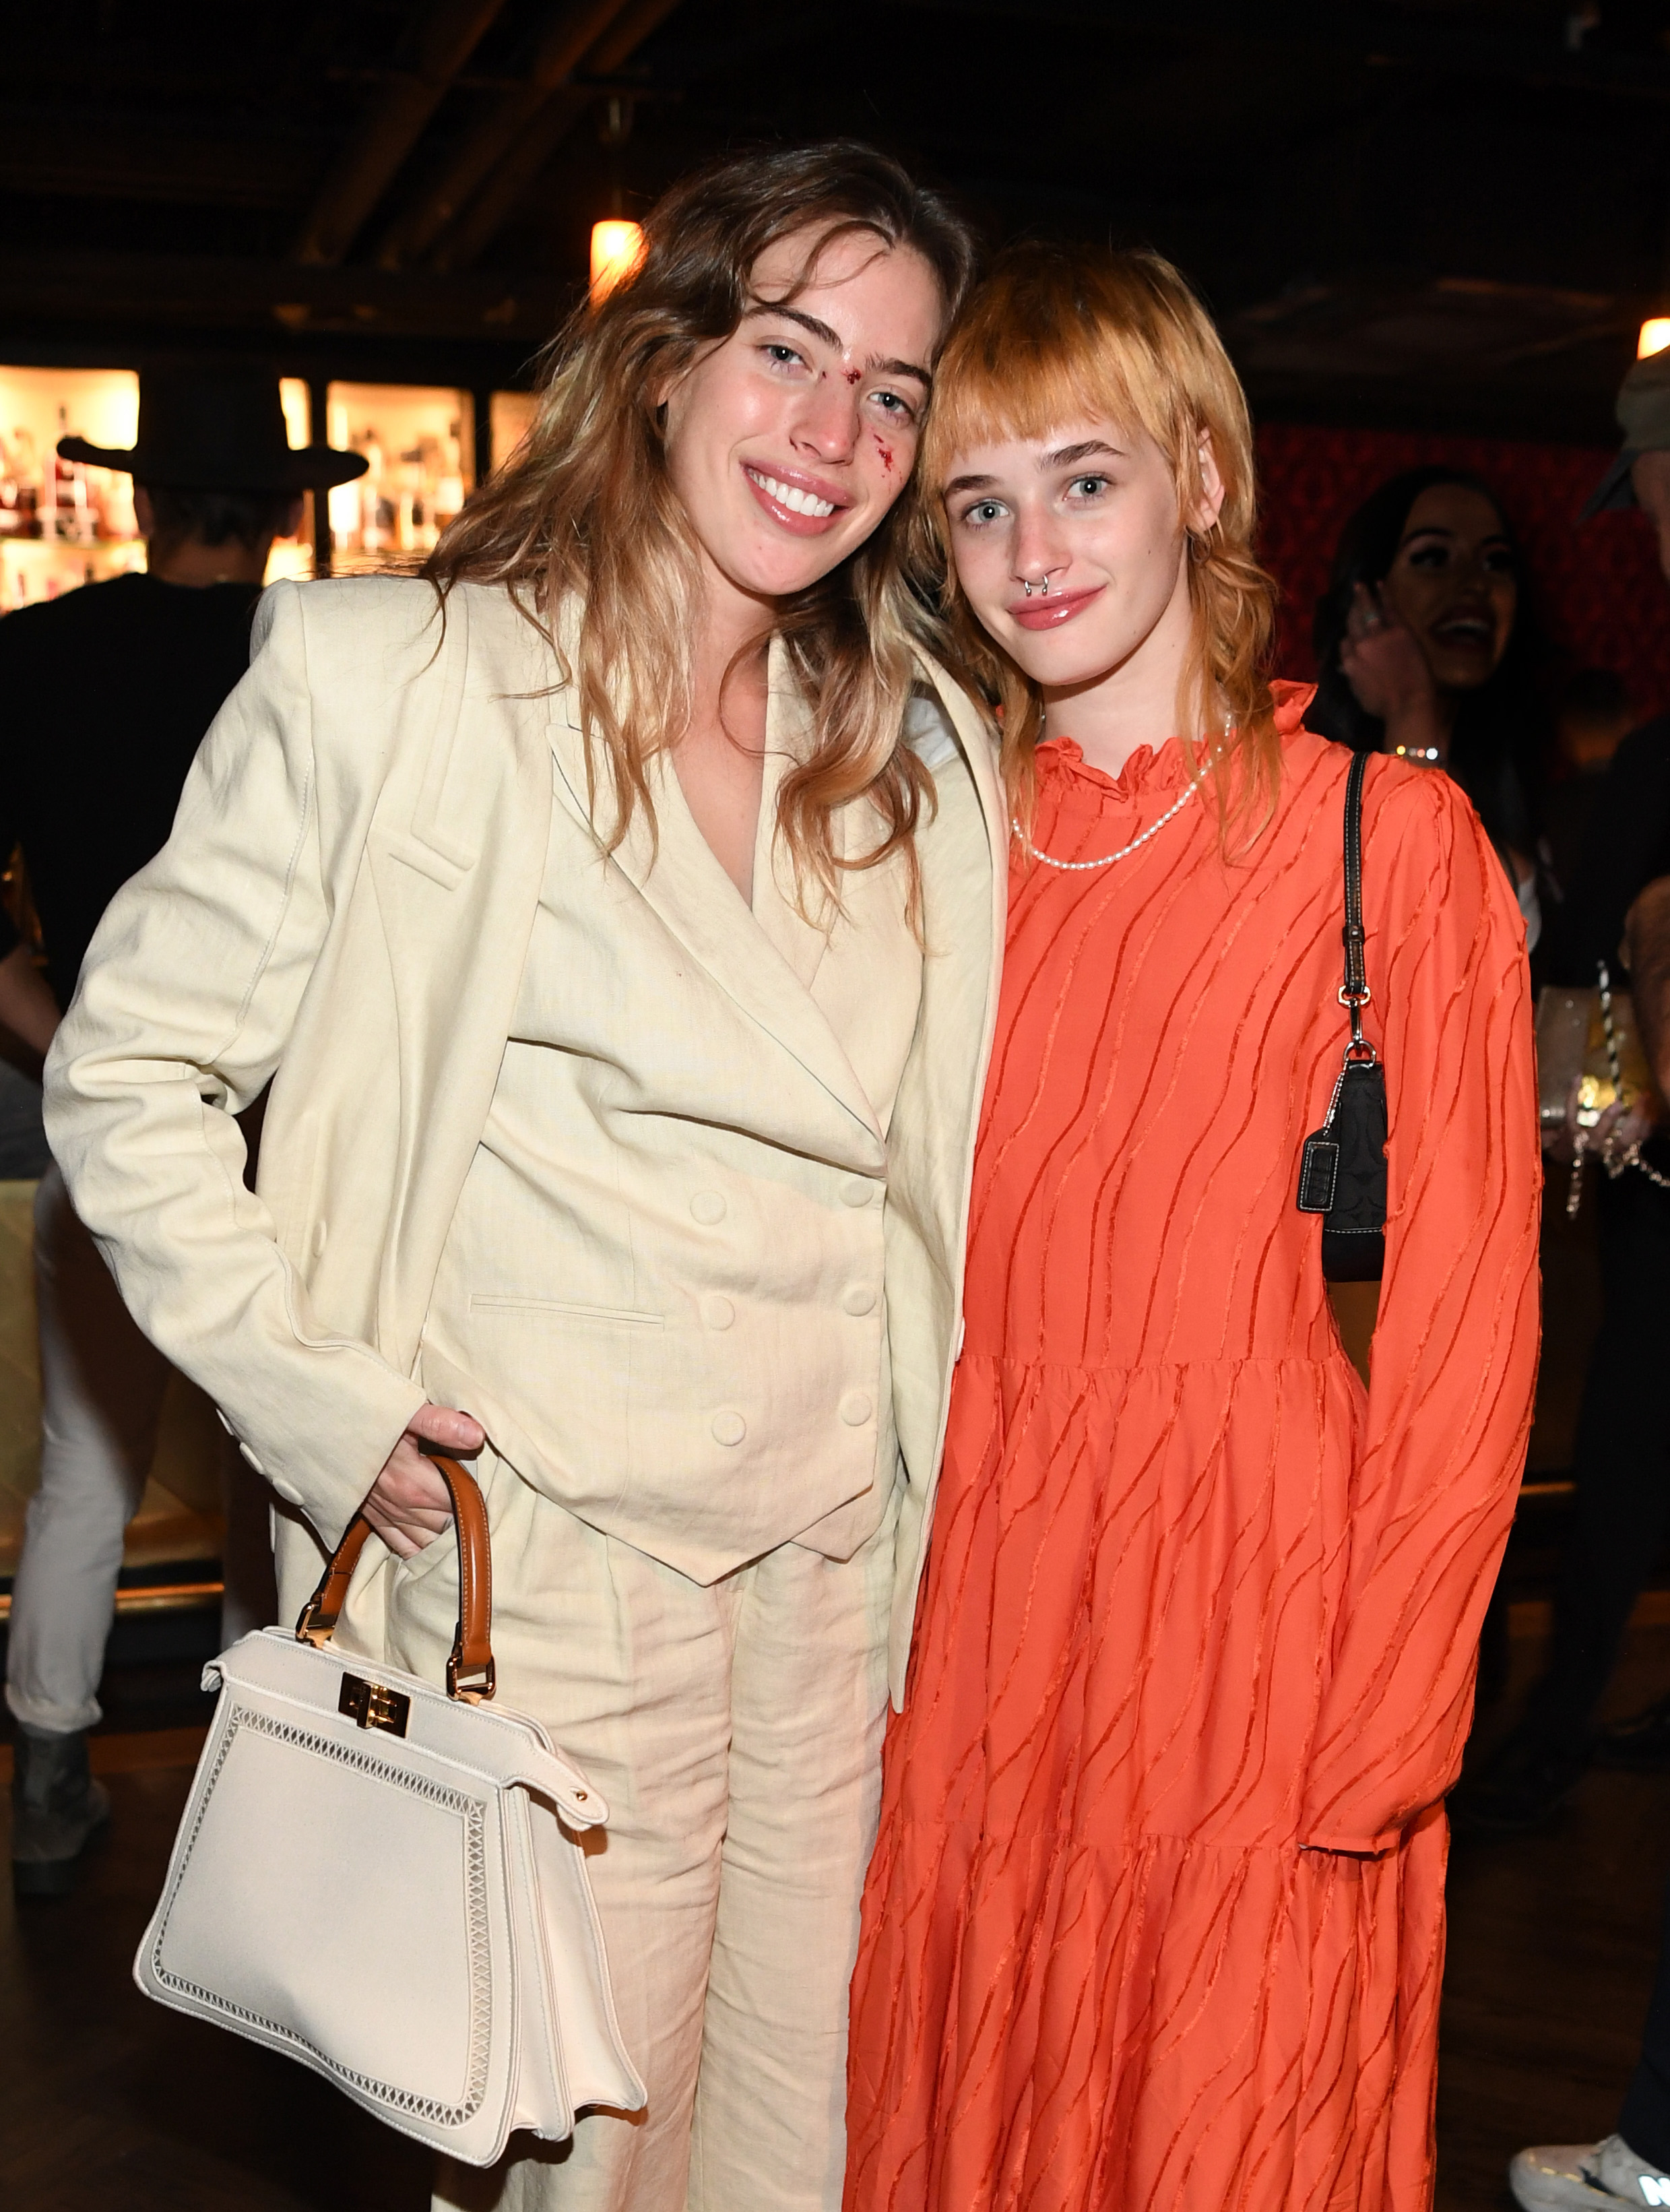 Clara McGregor and sister Esther McGregor attend the world premiere of The Birthday Cake at The Mob Museum on June 11, 2021 in Las Vegas, Nevada.